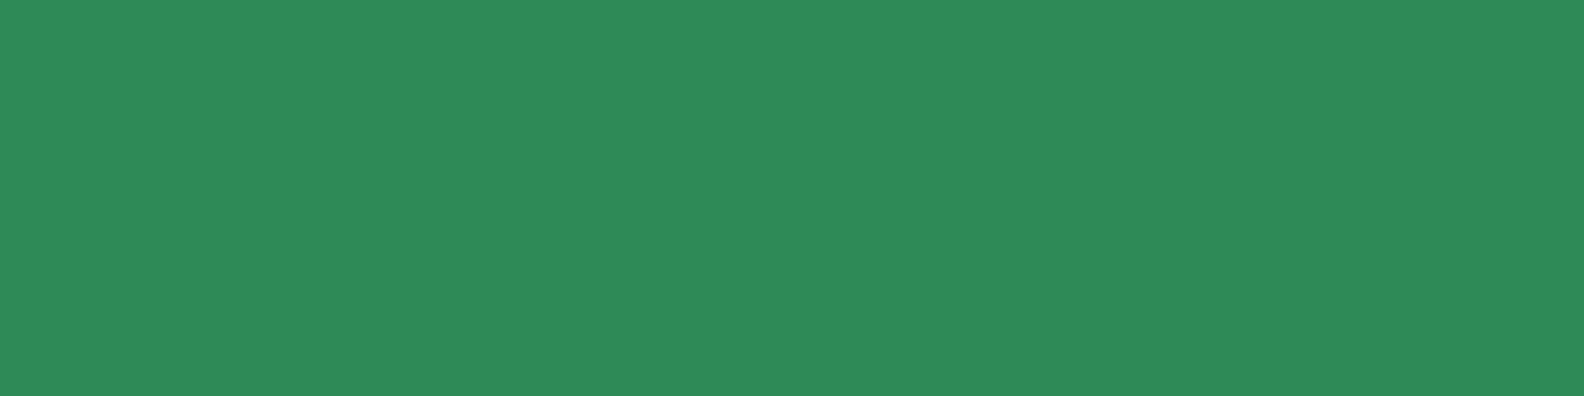 1584x396 Sea Green Solid Color Background